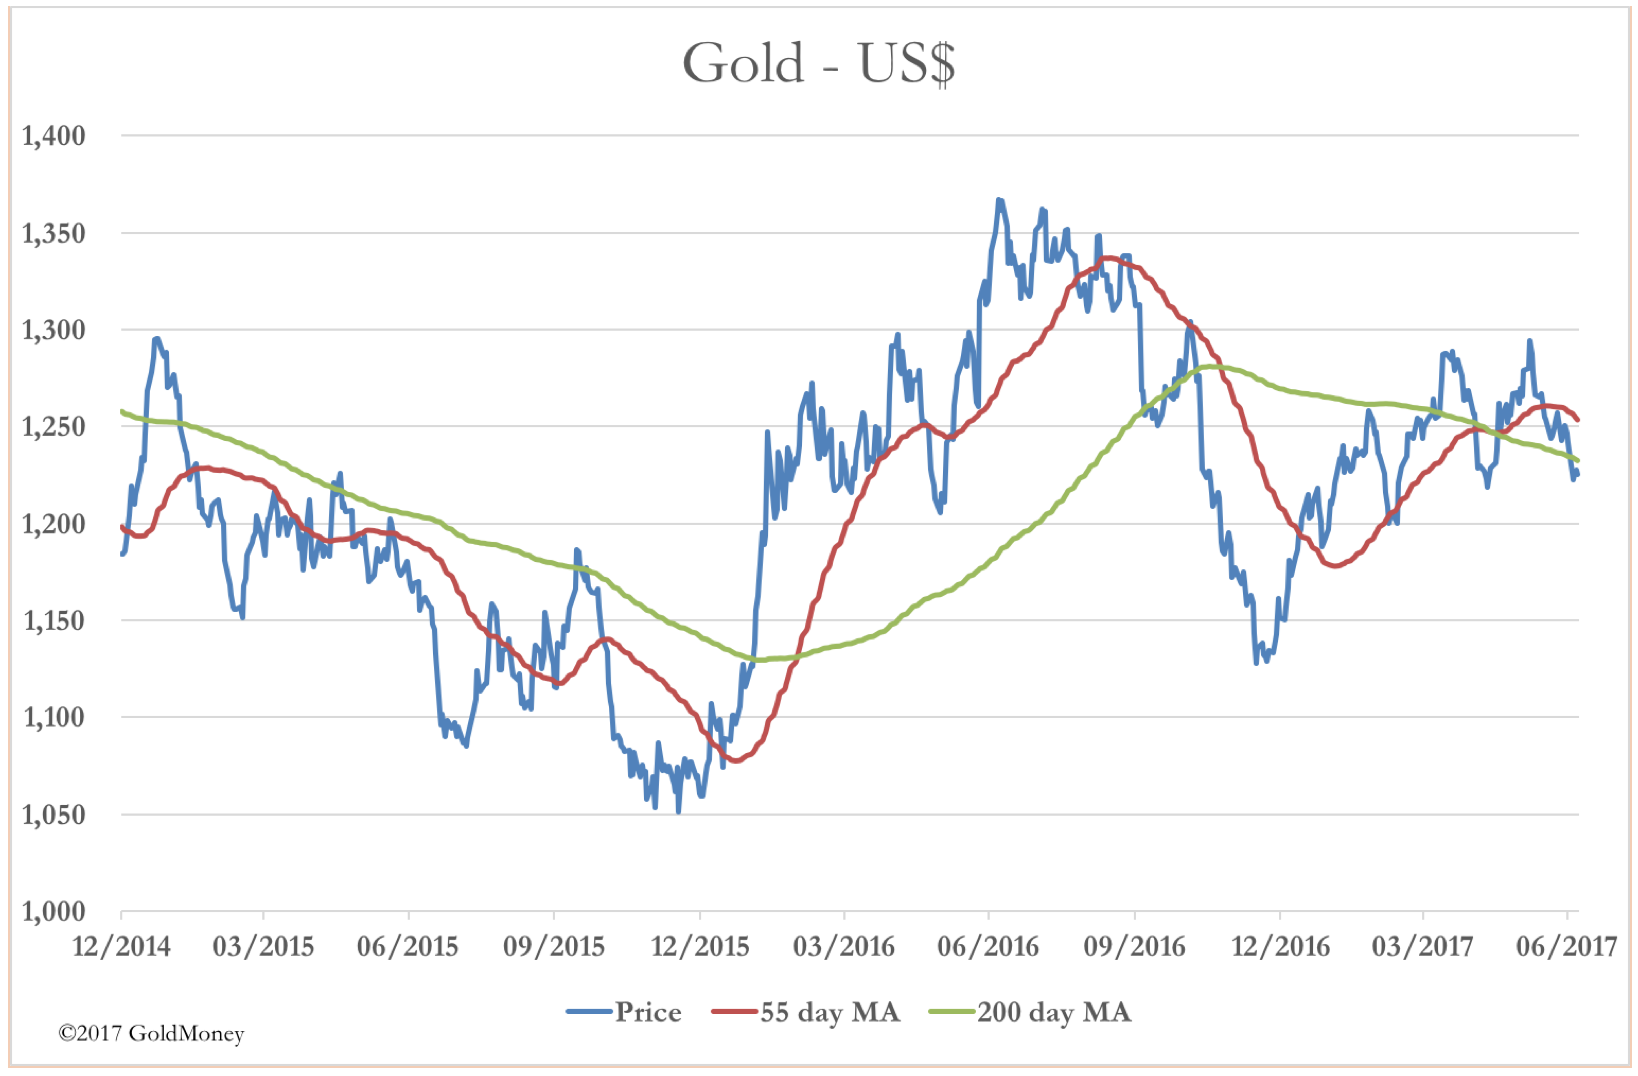 June 2017 Gold USD